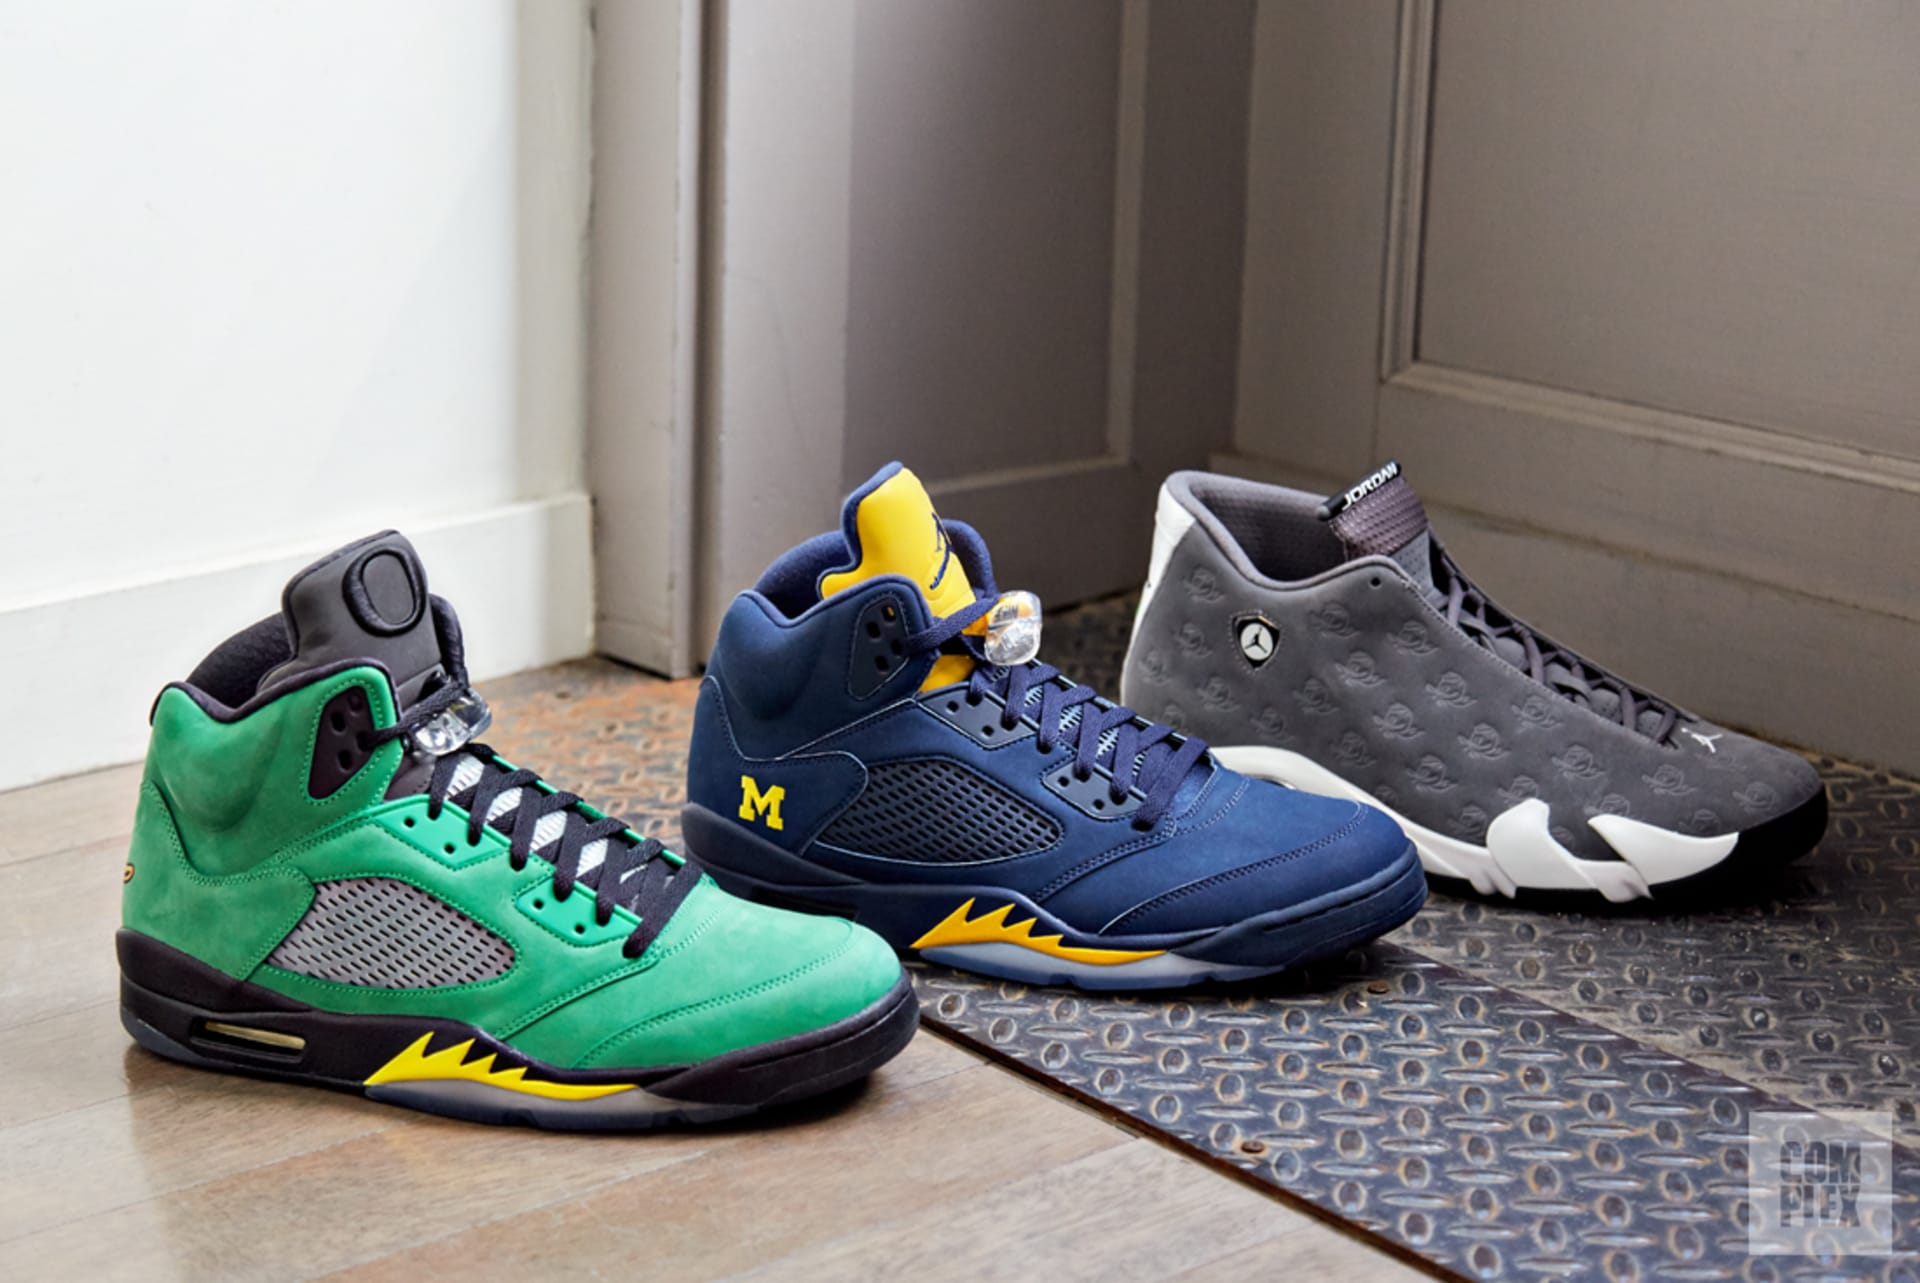 25f3ae1fbffc18 Air Jordan PEs made for the University of Oregon and Michigan. Sneakers  courtesy of Stadium Goods. Image via Complex Original David Cabrera